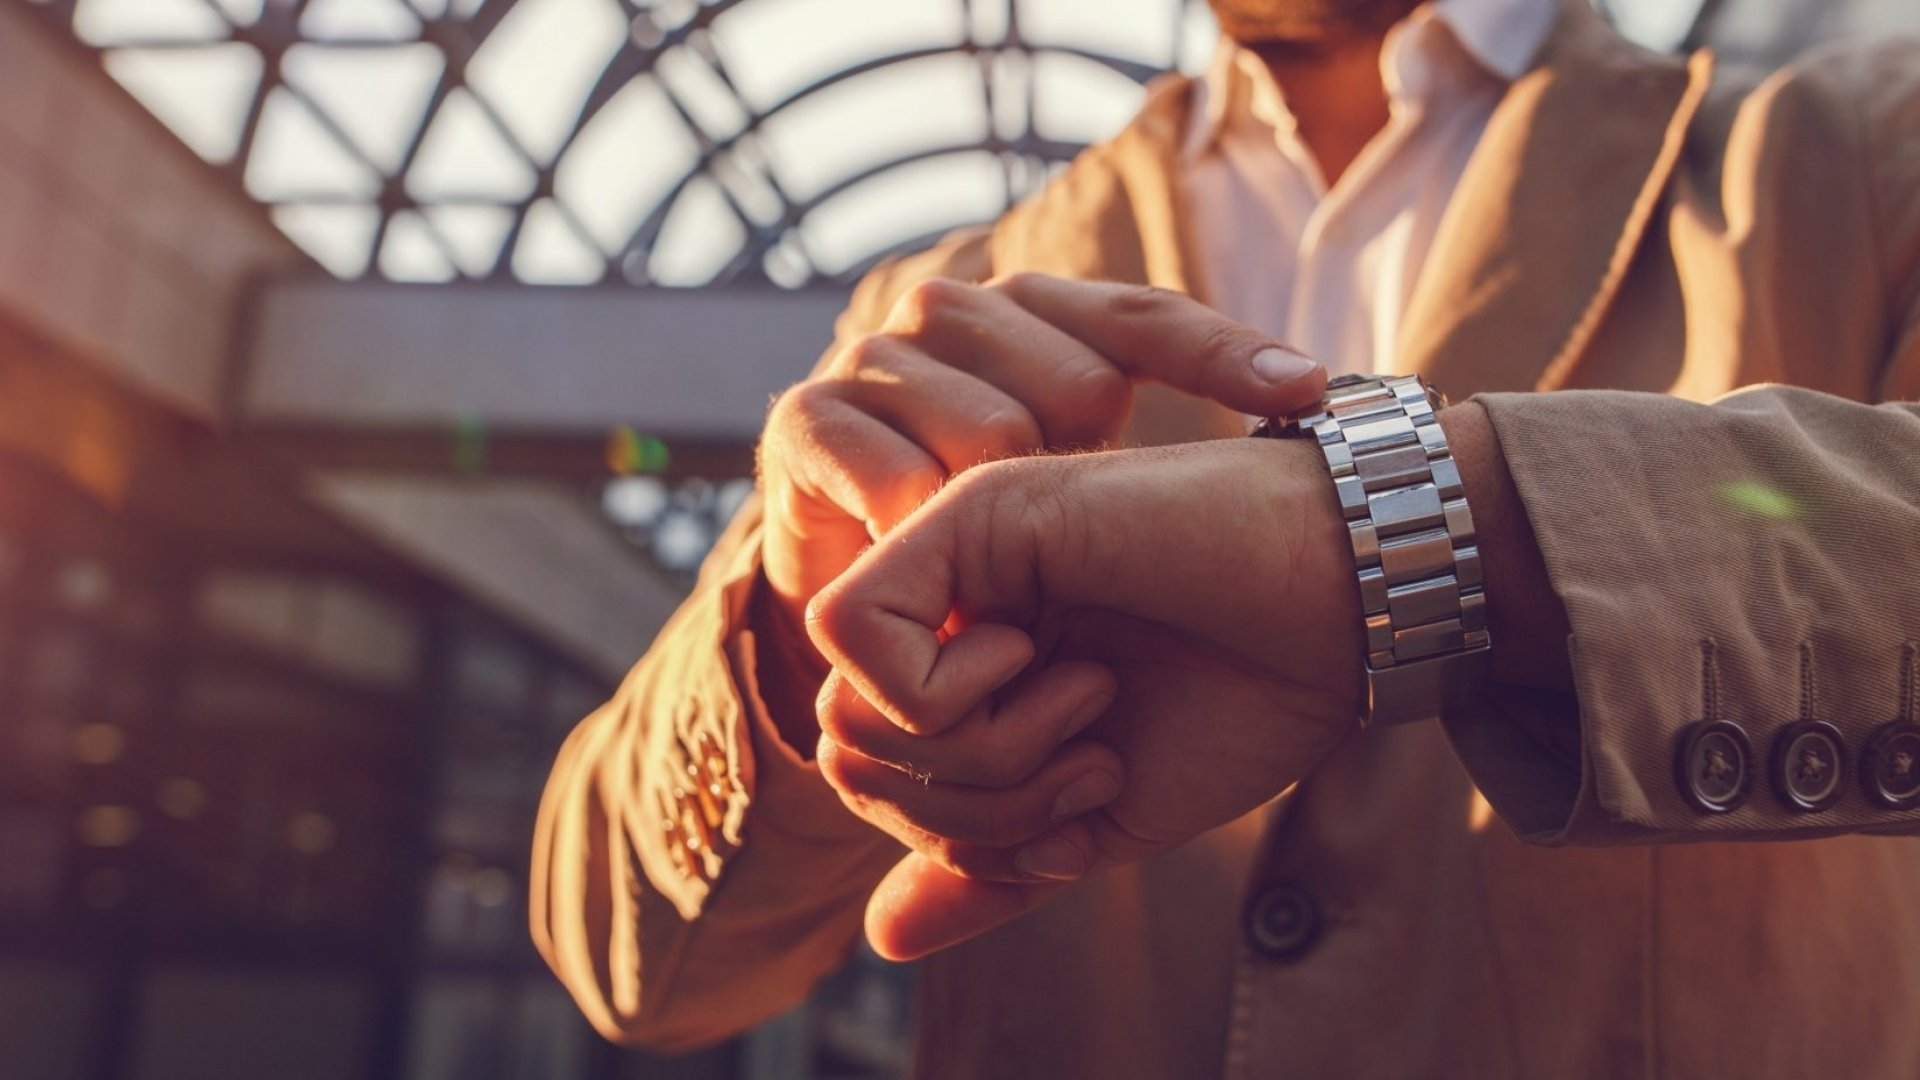 4 Simple Mistakes That Can Ruin a First Impression